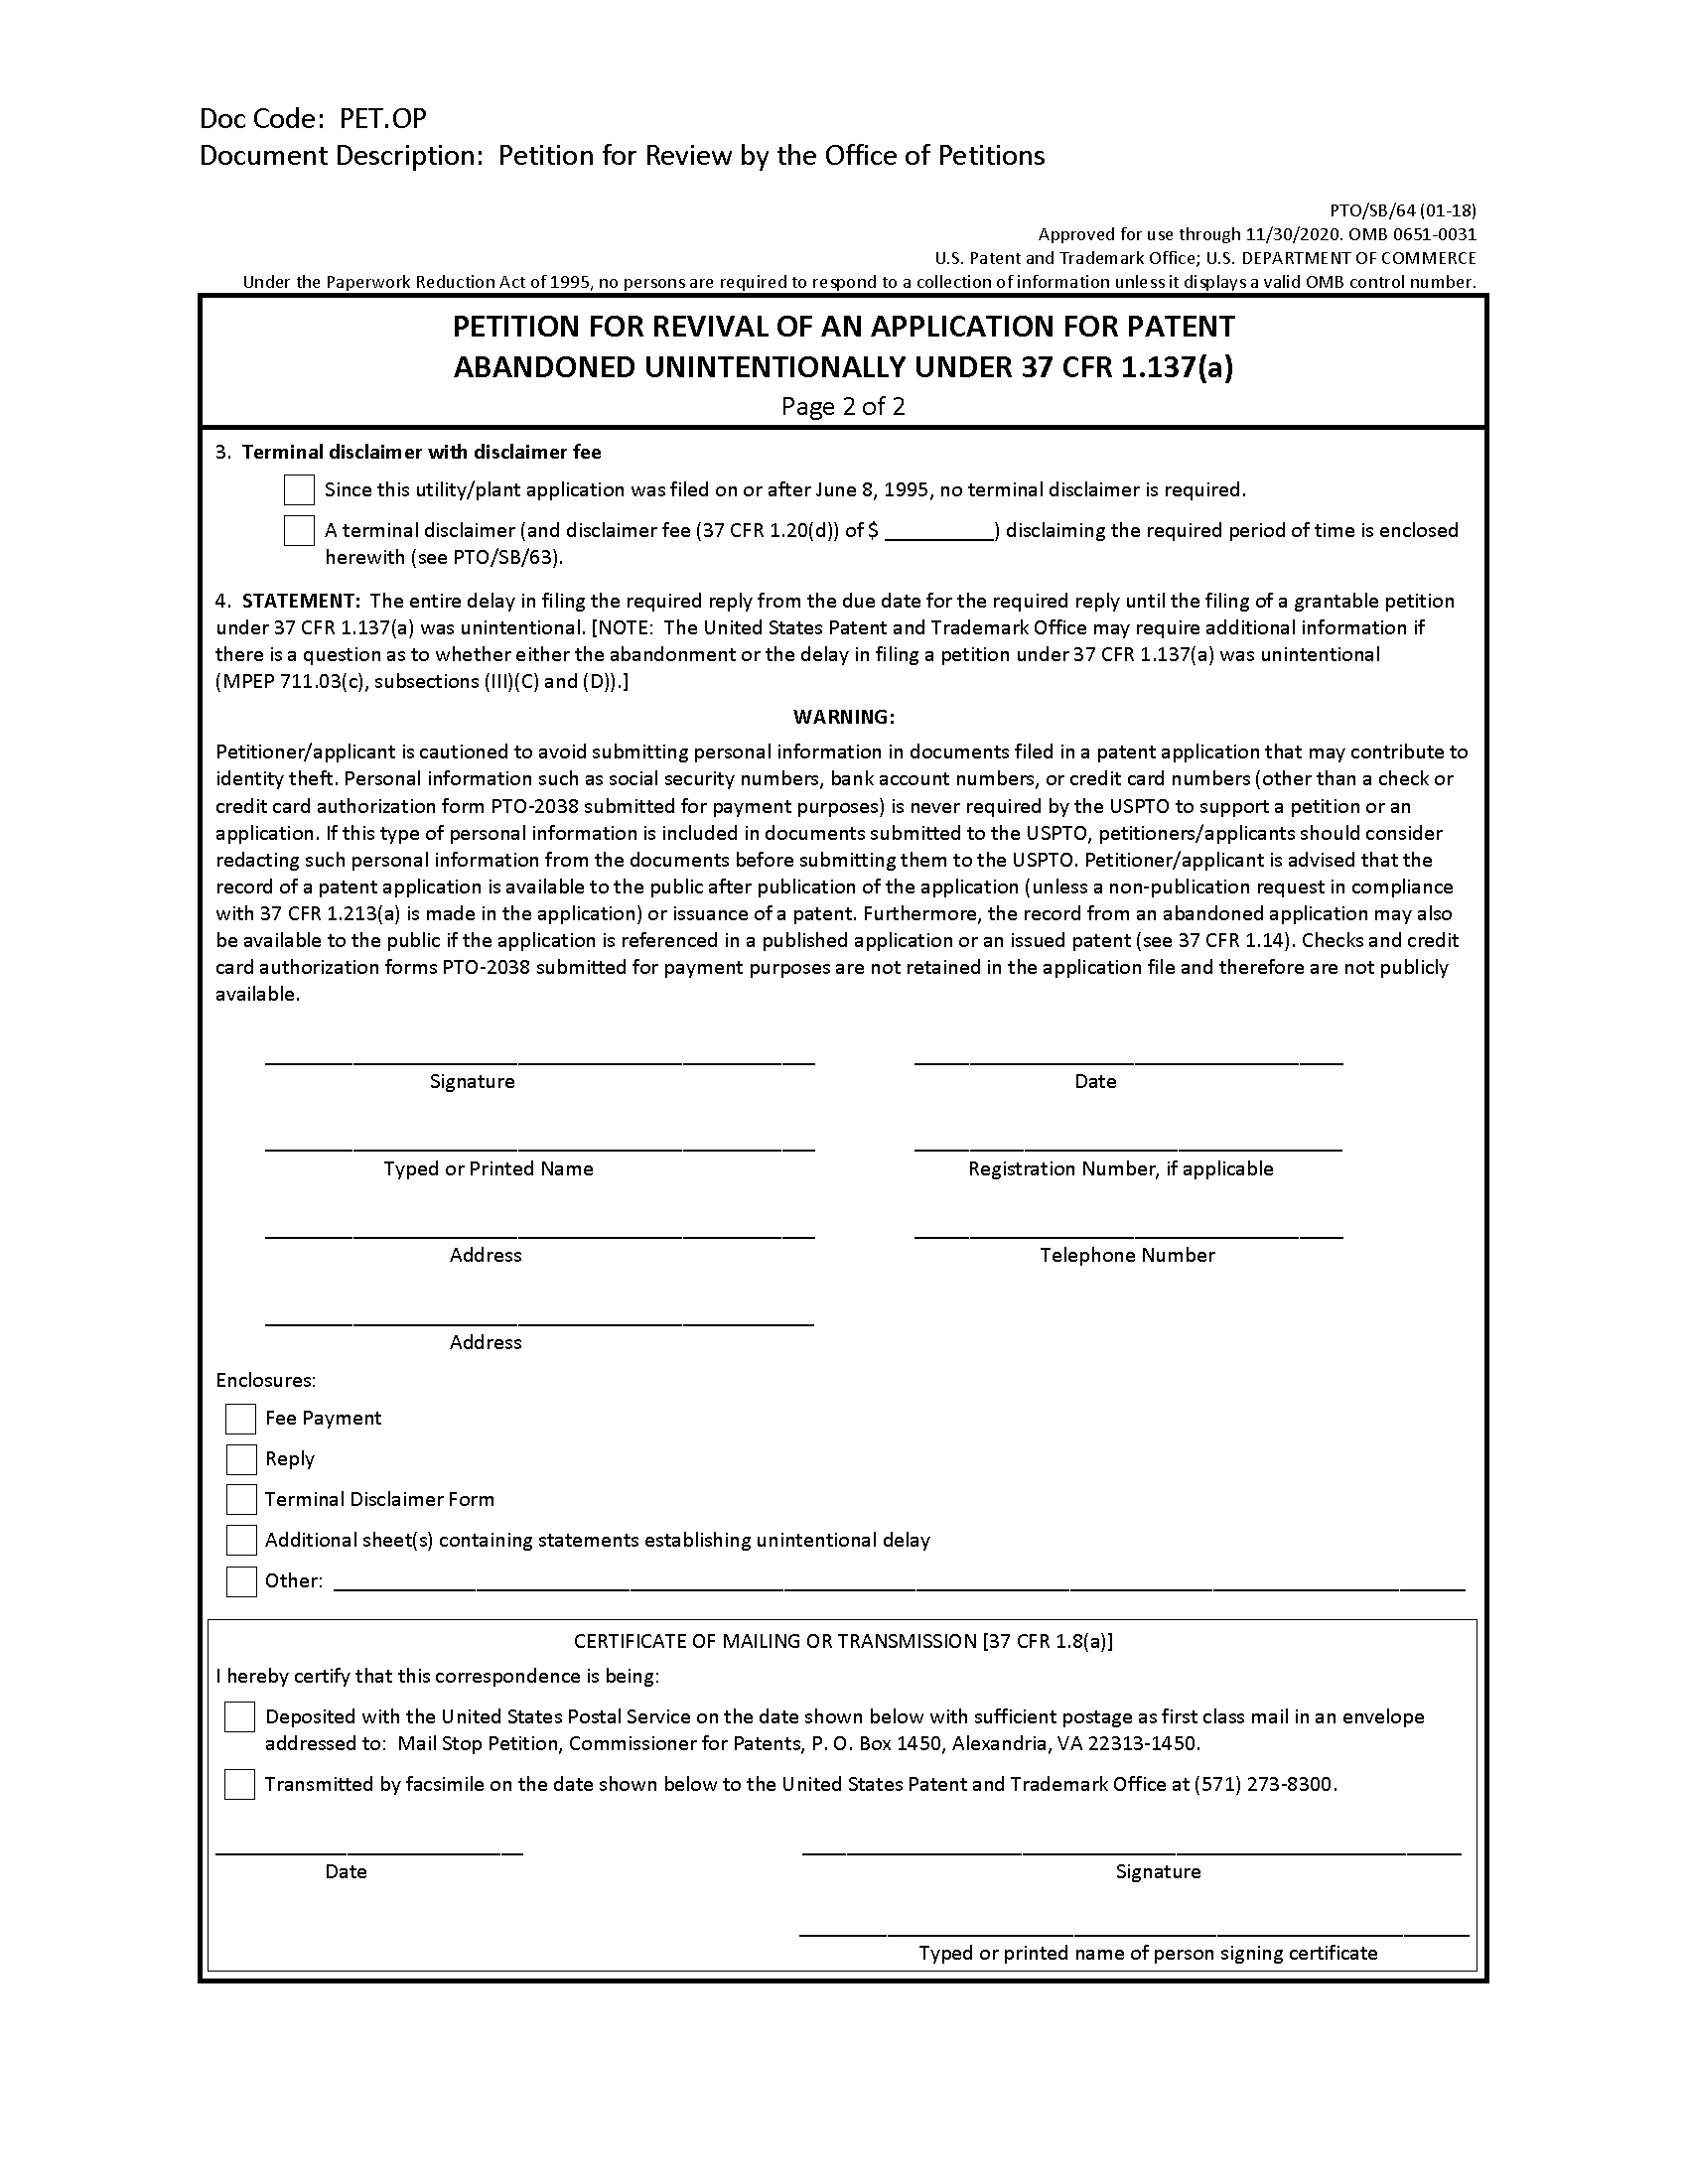 711Abandonment of Patent Application – Official Change of Address Form